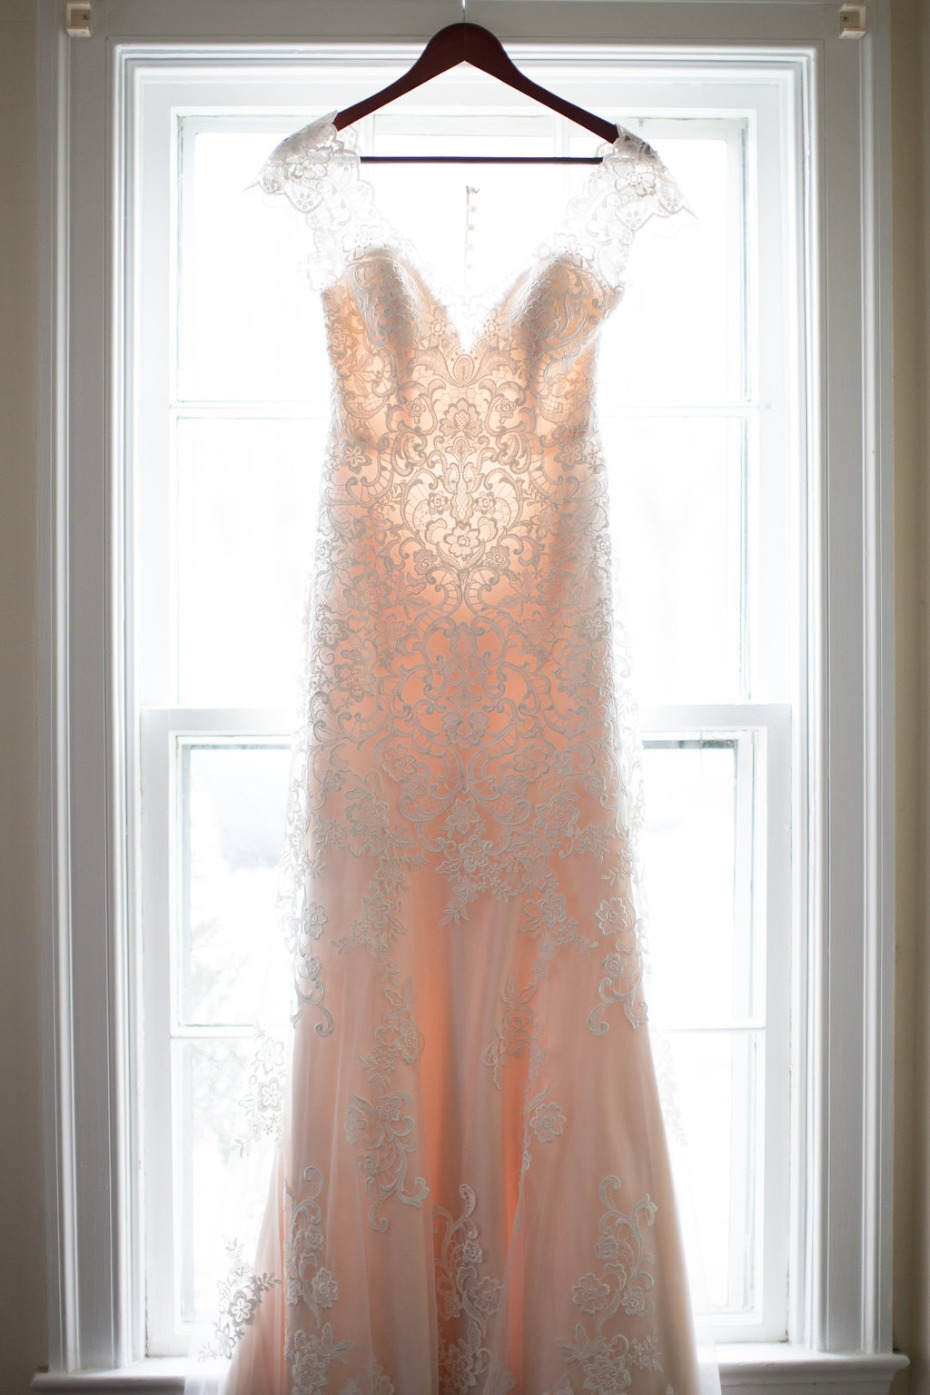 Blush lined wedding dress